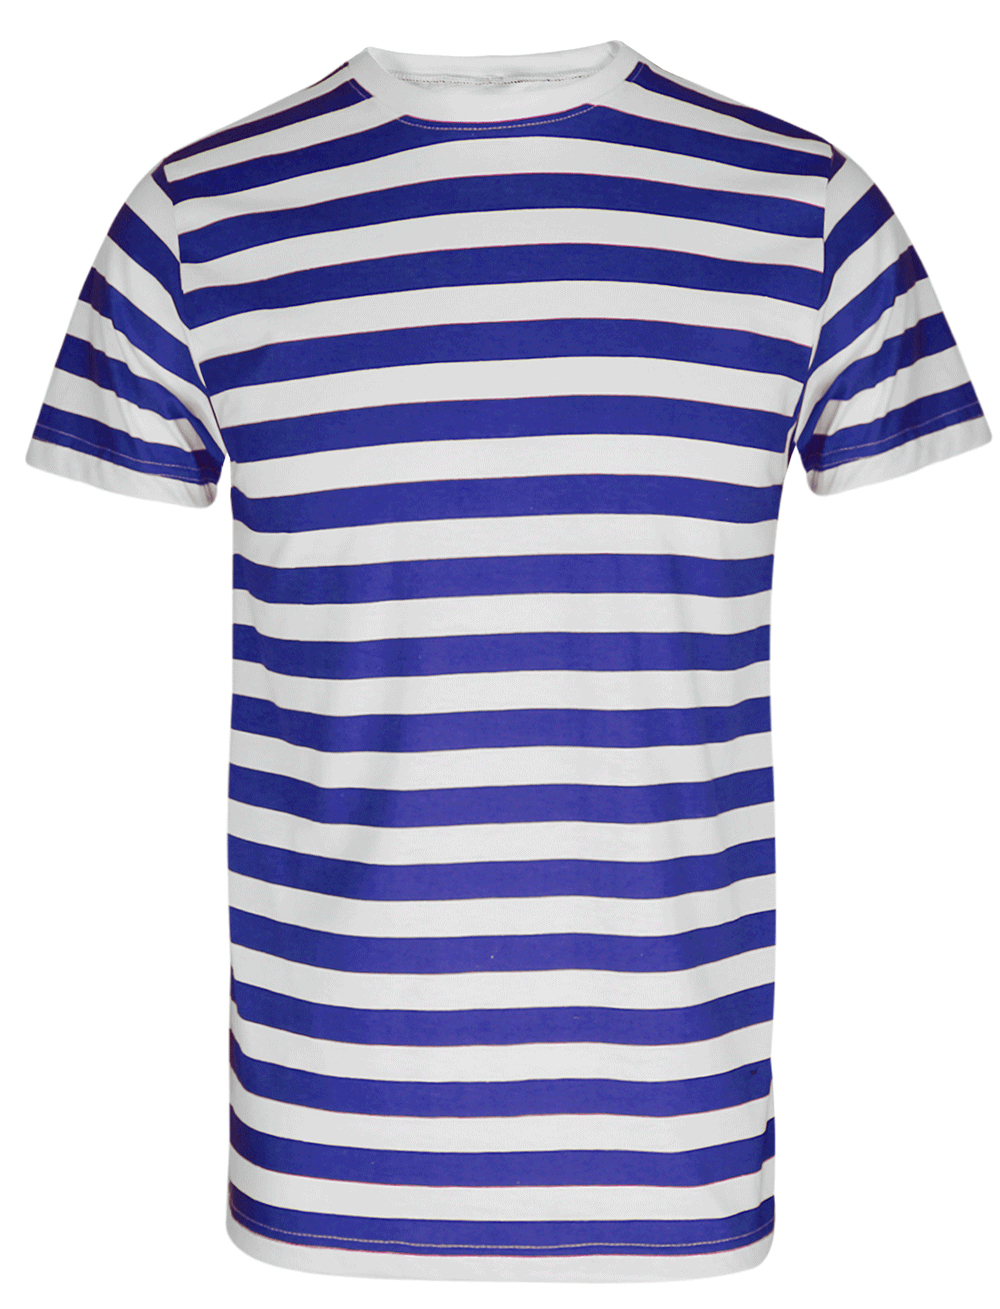 Striped T-Shirts. Shop striped t-shirts at Zumiez, carrying striped tees from brands like LRG, Volcom, RVCA, and Empyre. Free shipping to any Zumiez store!